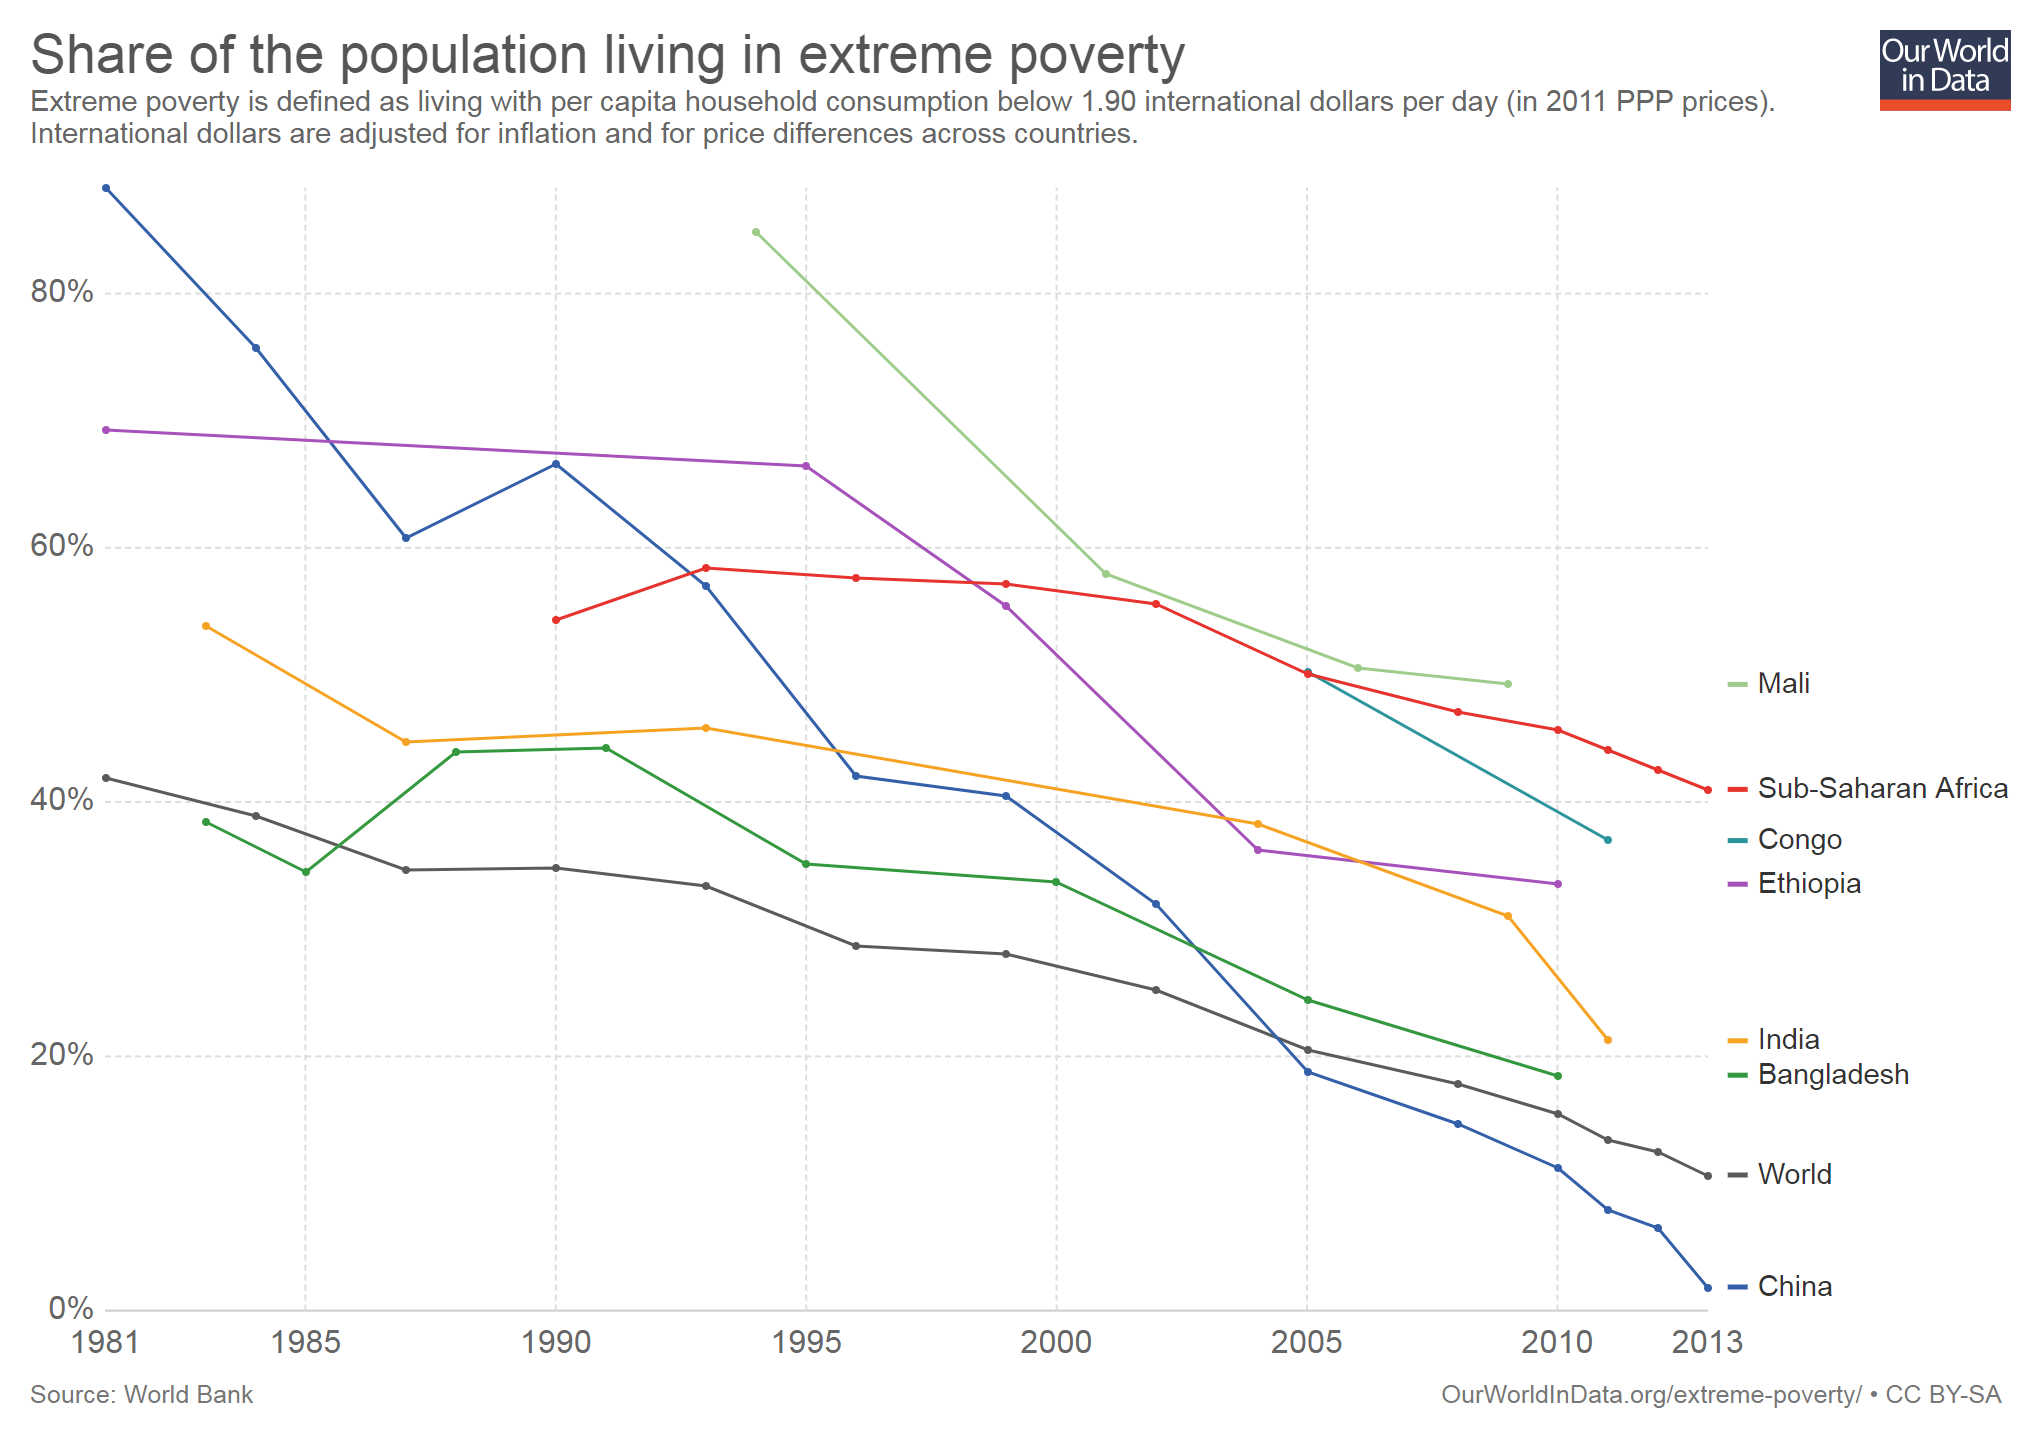 share-of-the-population-living-in-extreme-poverty (1)